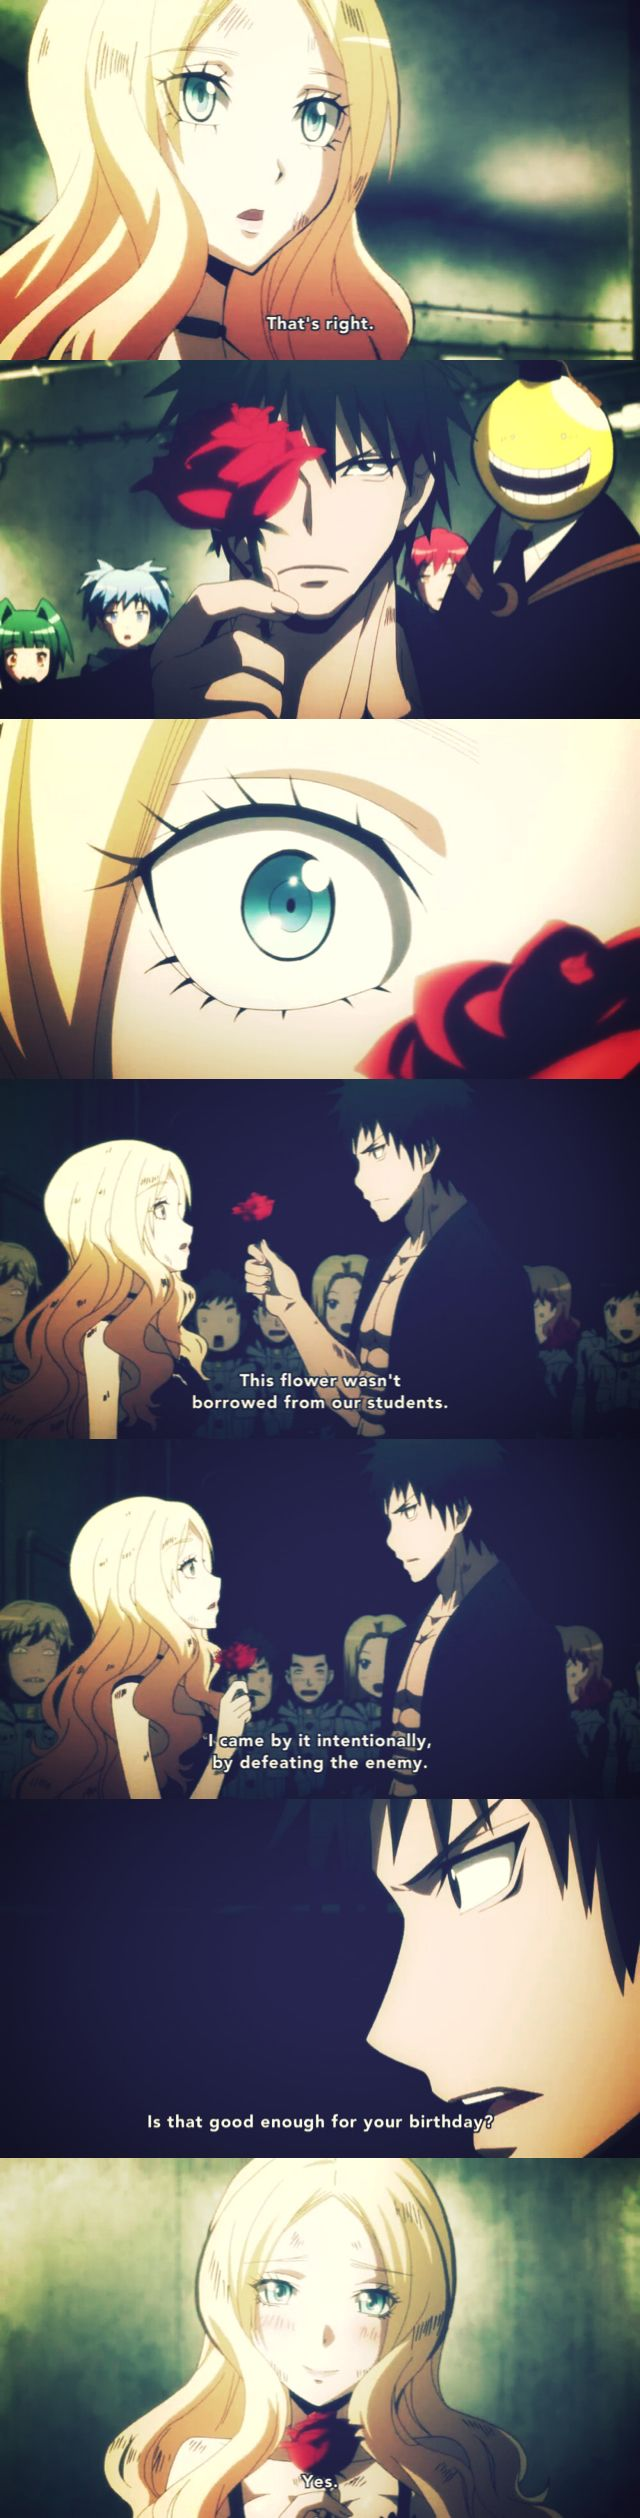 Karasuma x irina♥ why is karasuma still a poker face when he gives the rose to irina???look irina was sooo happy